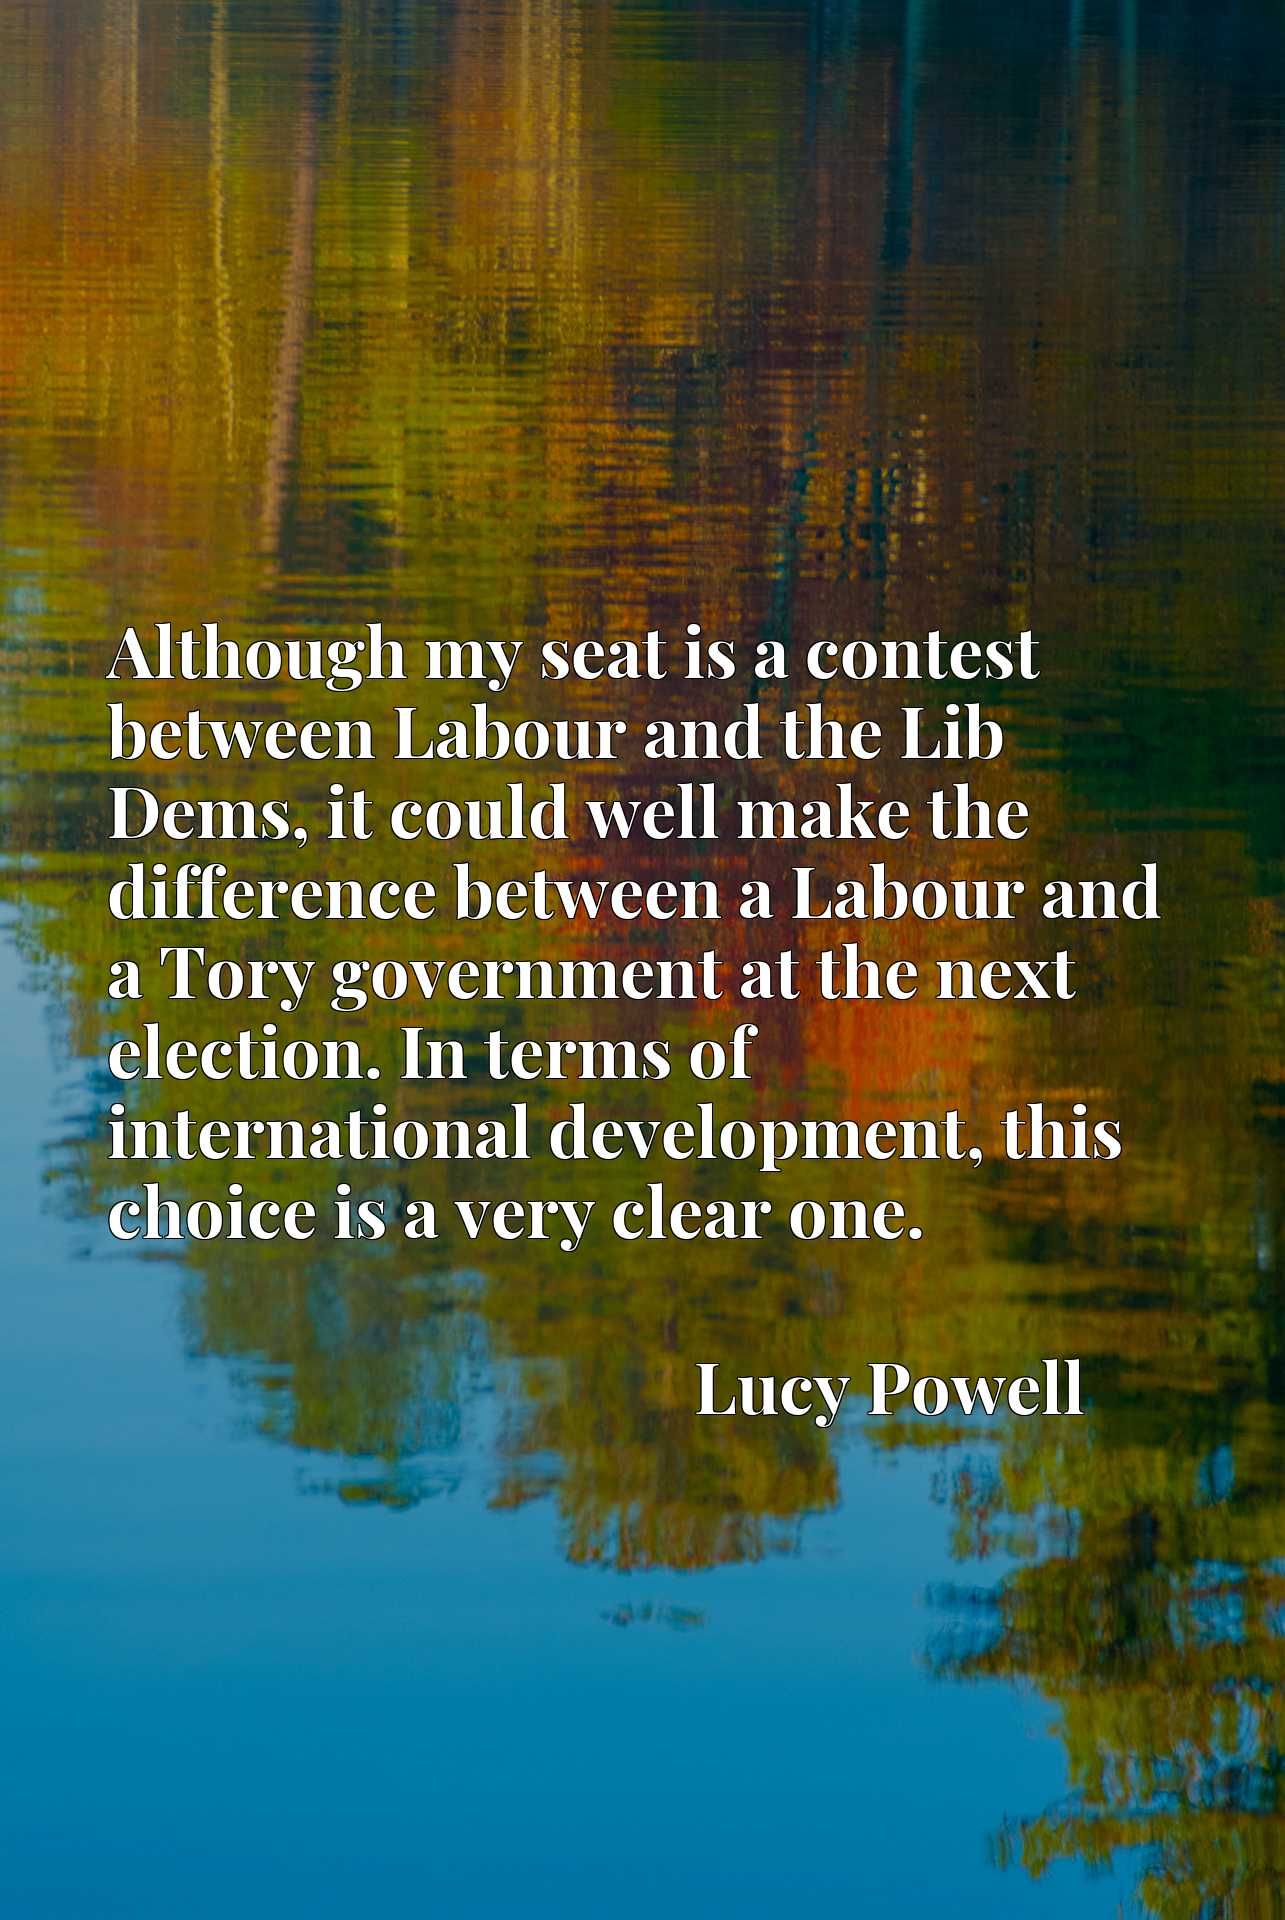 Although my seat is a contest between Labour and the Lib Dems, it could well make the difference between a Labour and a Tory government at the next election. In terms of international development, this choice is a very clear one.